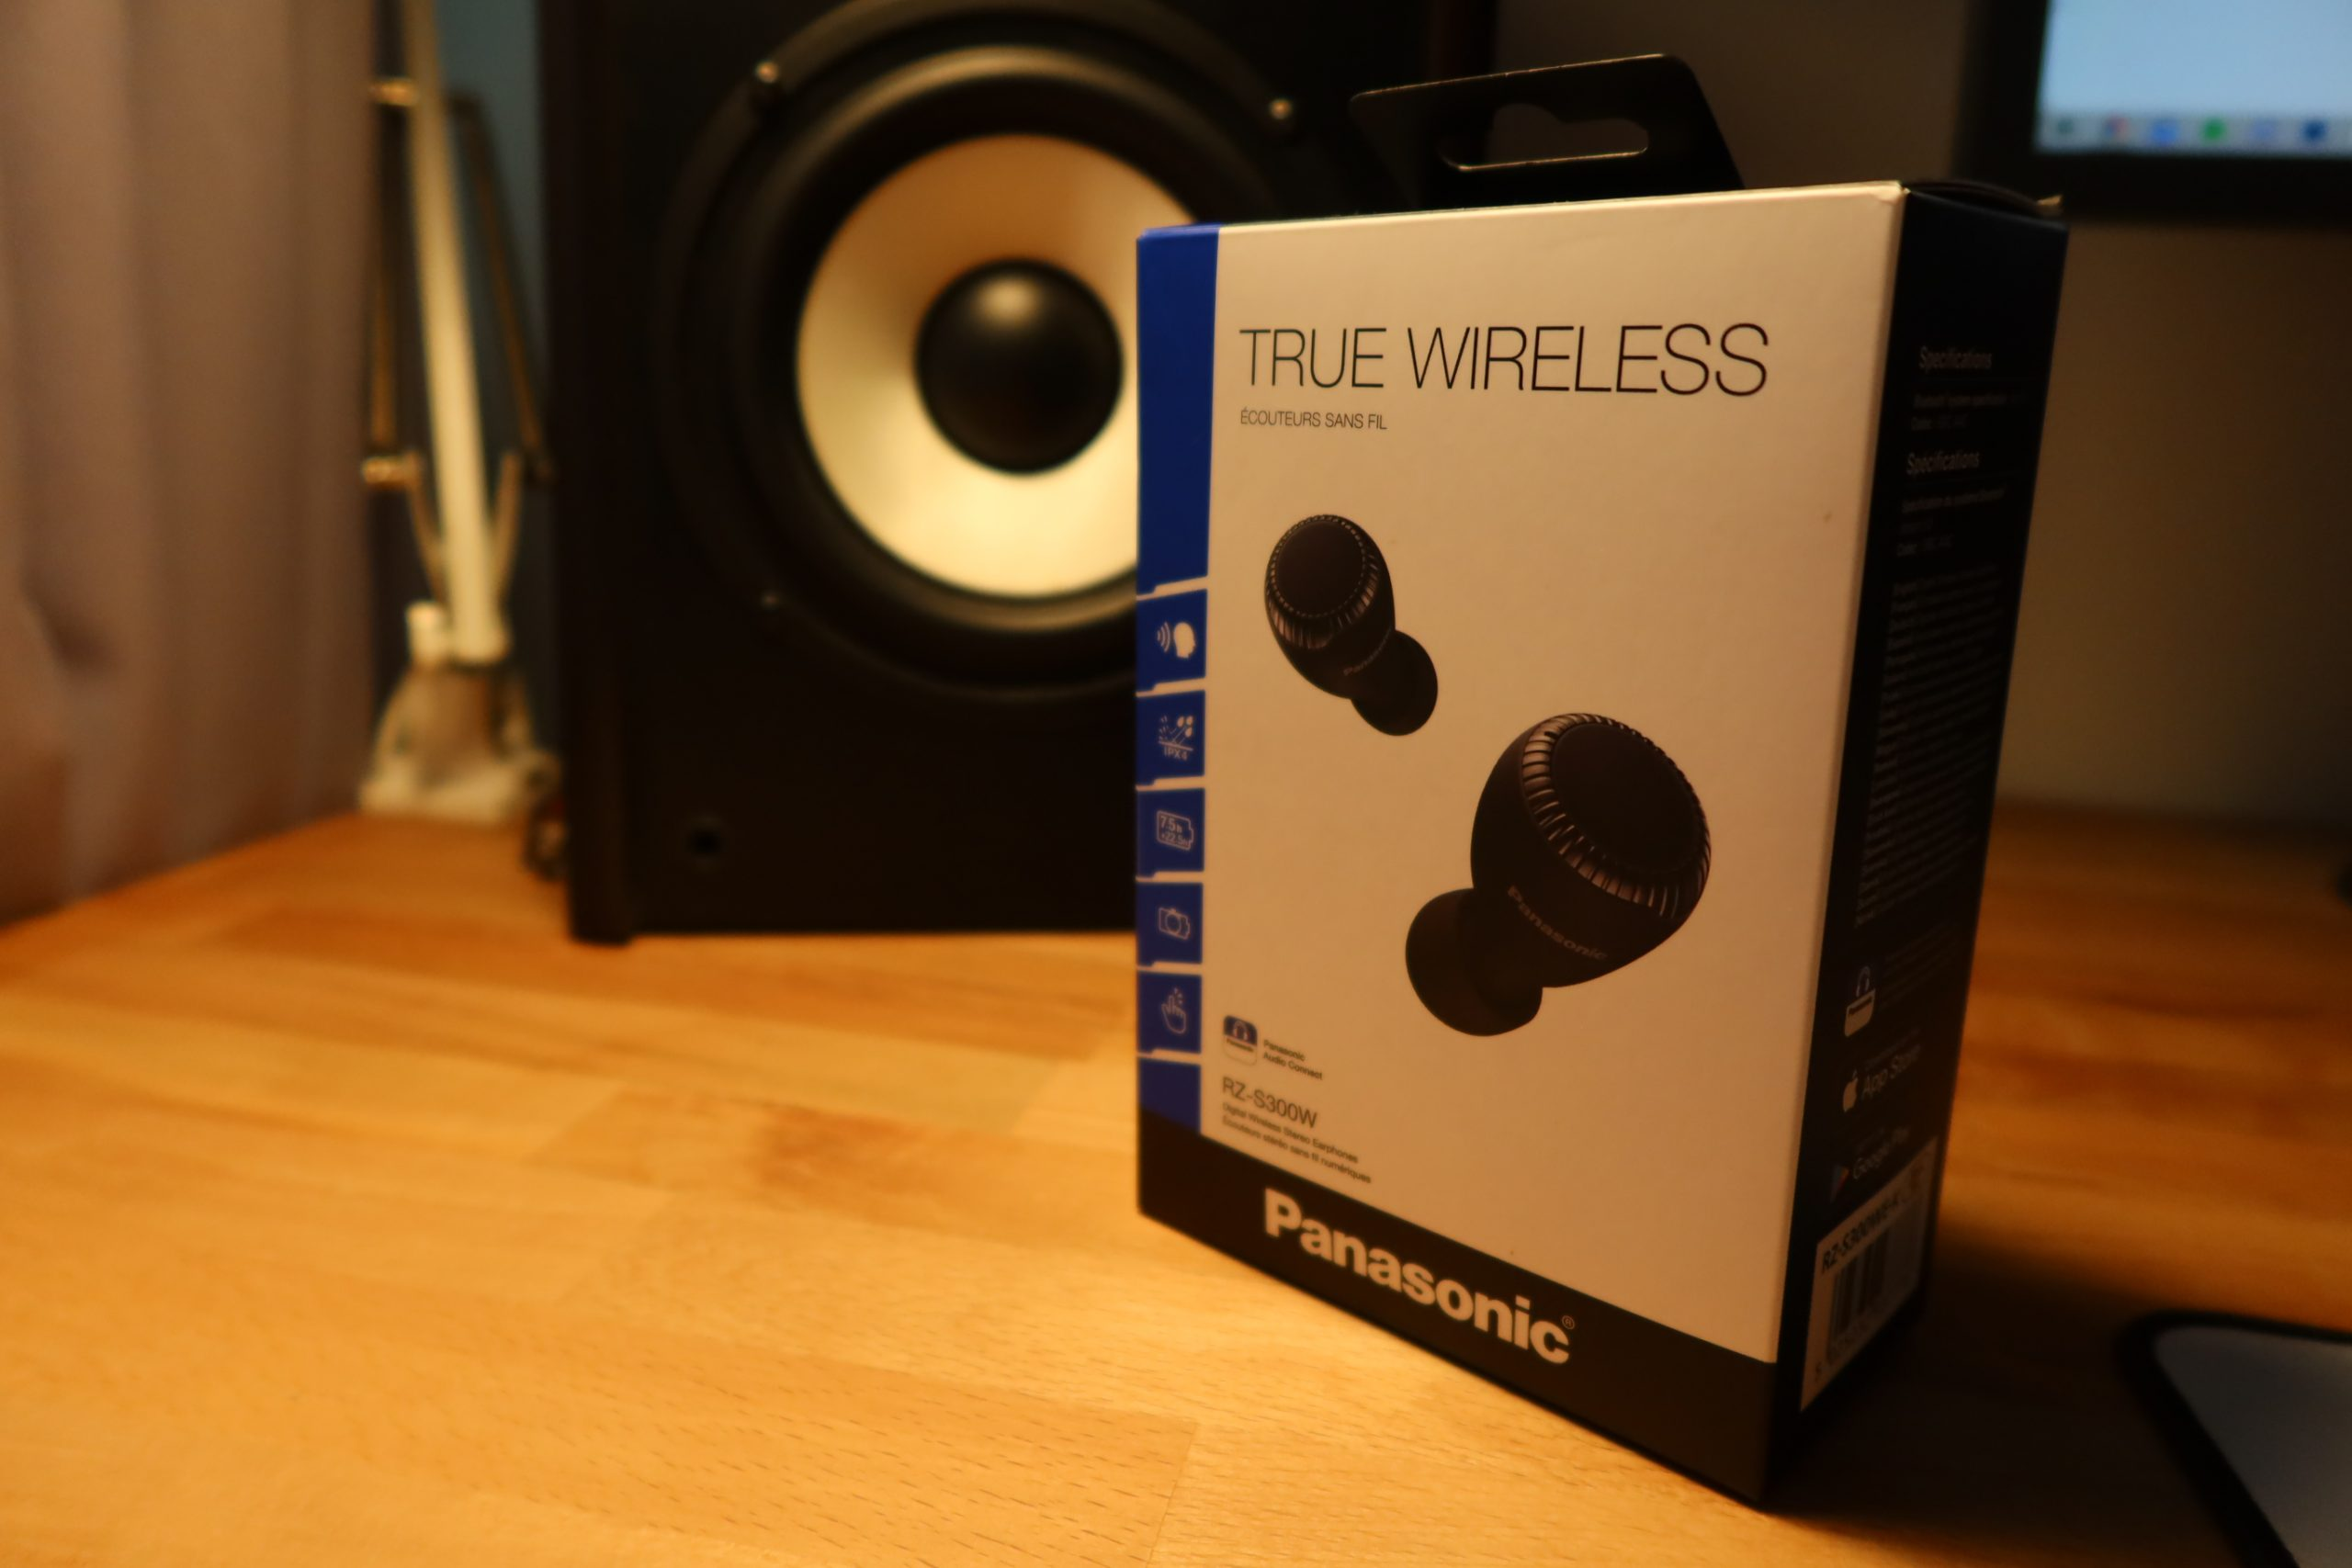 REVIEW PANASONIC RZ-S300W TRUE WIRELESS EARBUDS